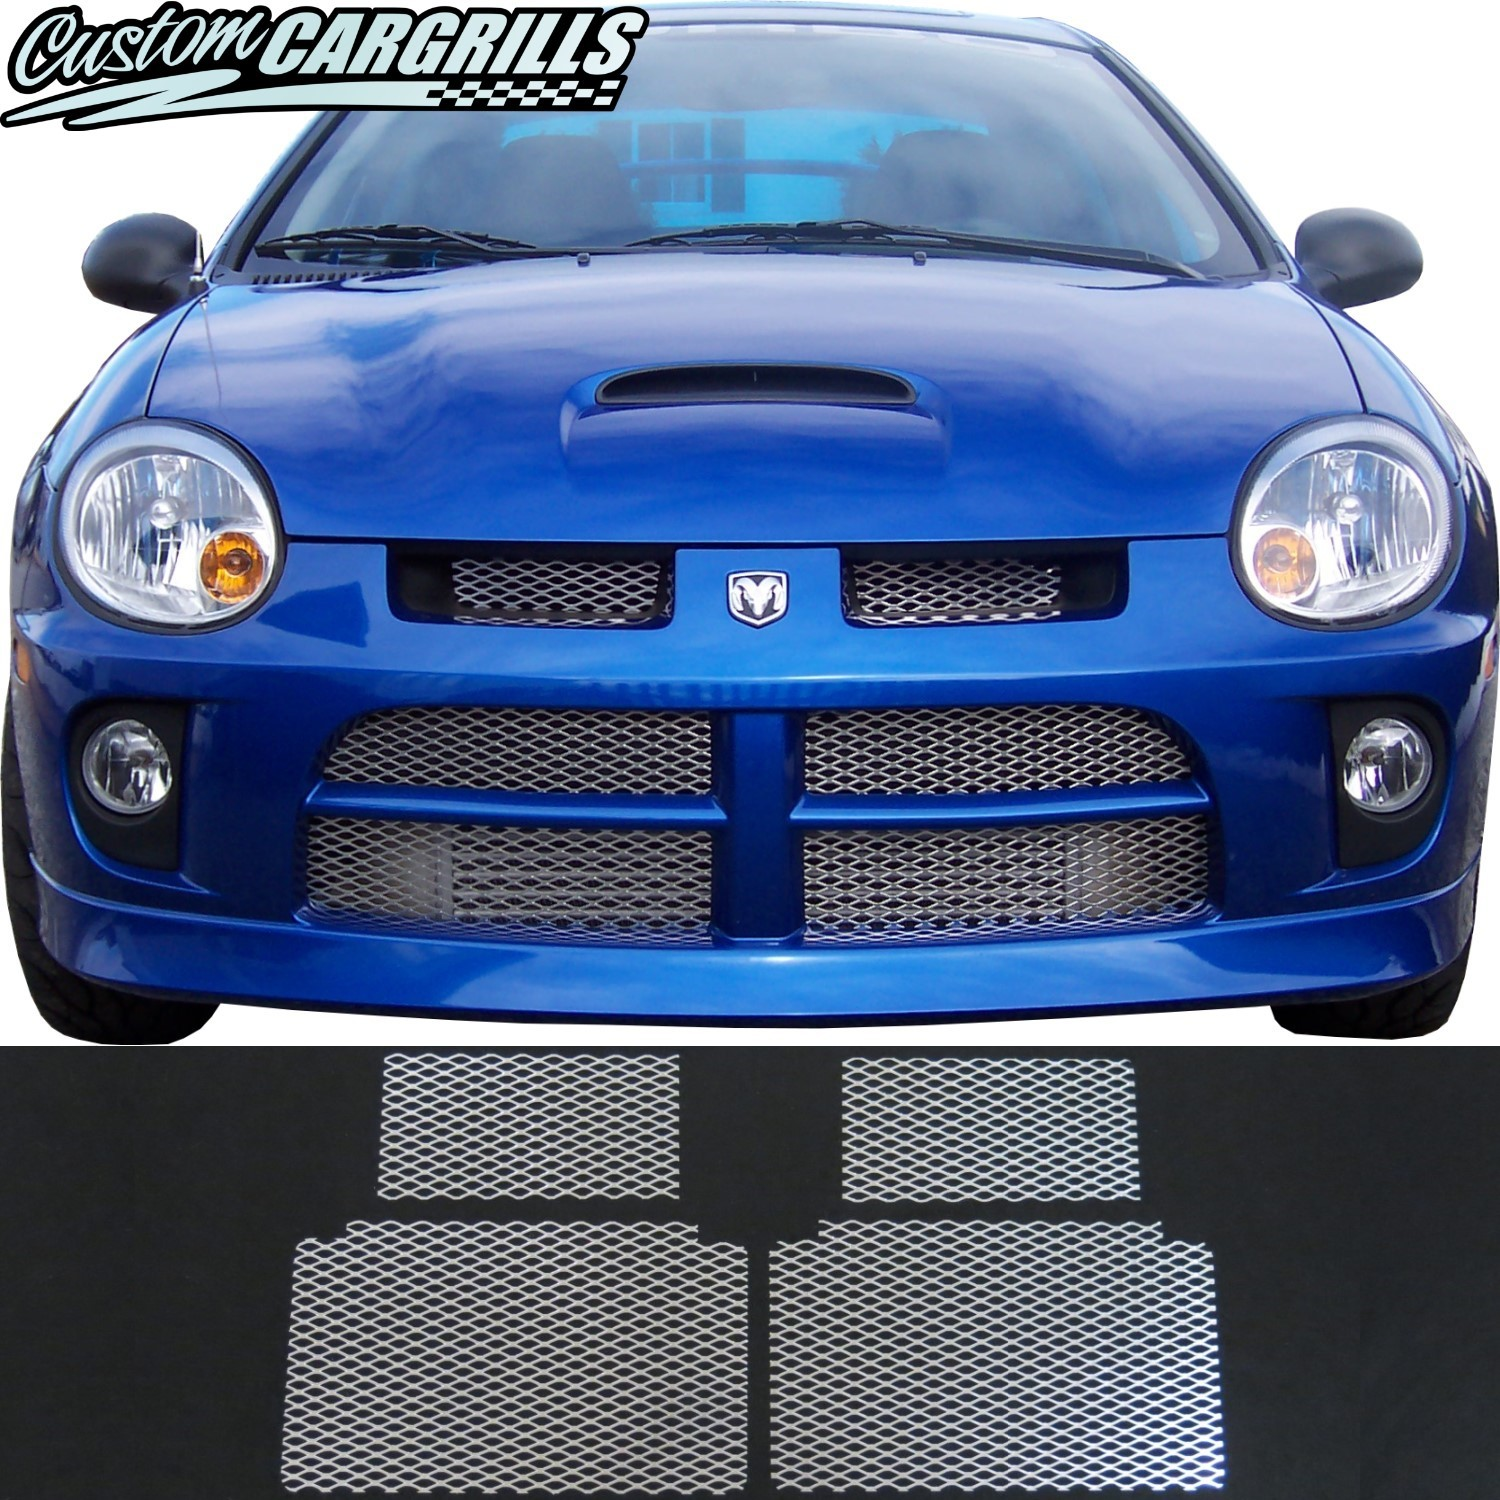 2003 - 2005 Dodge Neon SRT-4 Grill Kit